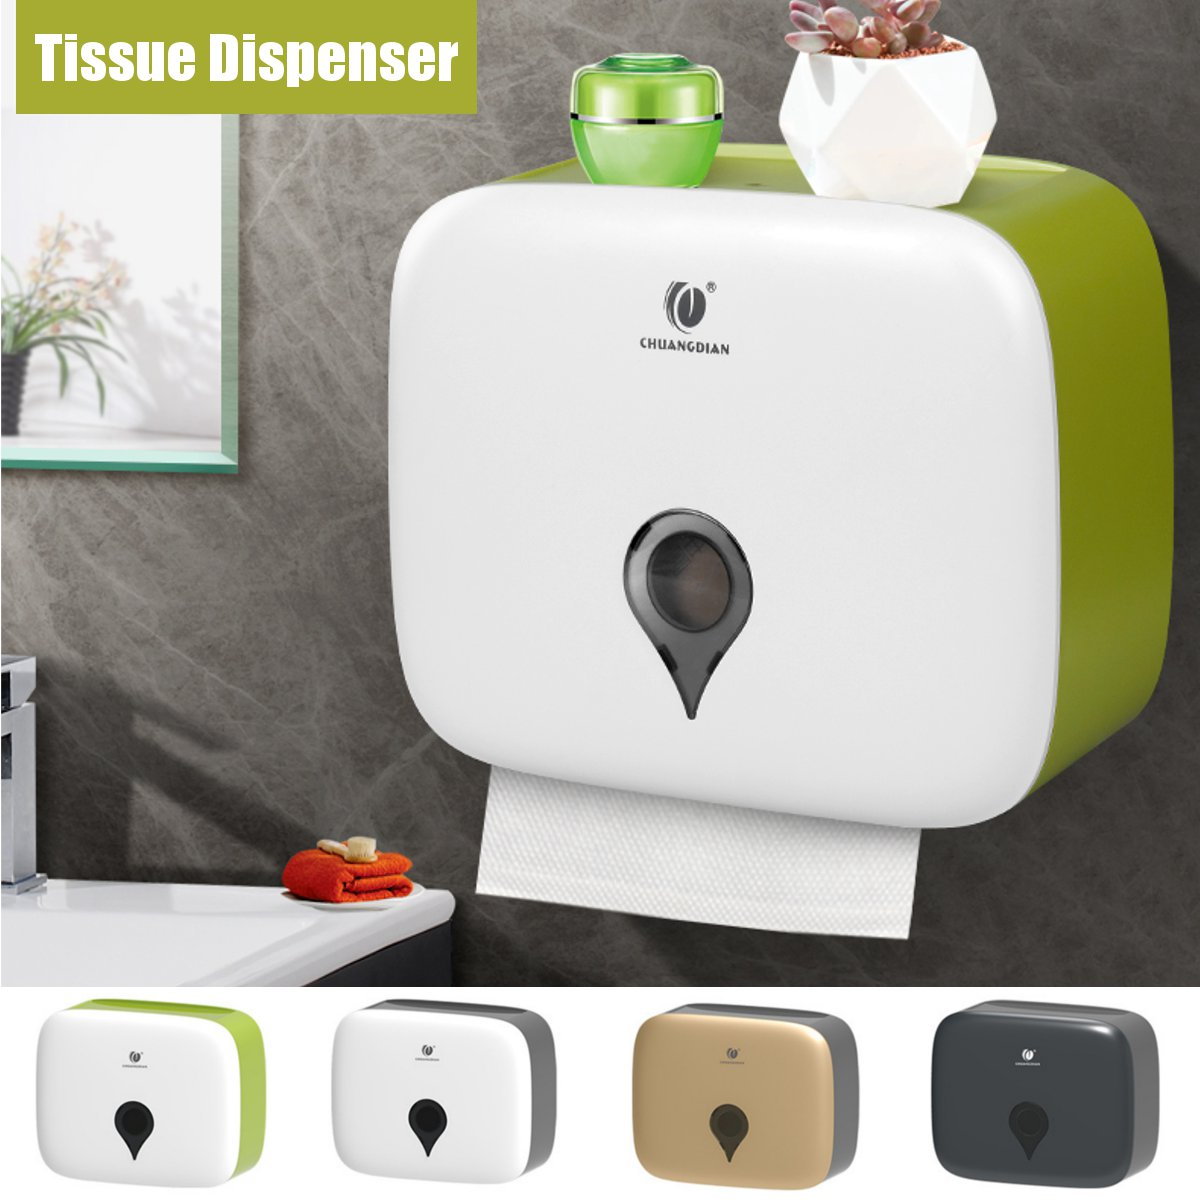 Bathroom Portable Toilet Paper Holder Double Layer Waterproof Storage Box Wall Mounted Toilet Paper Roll Towel Dispenser